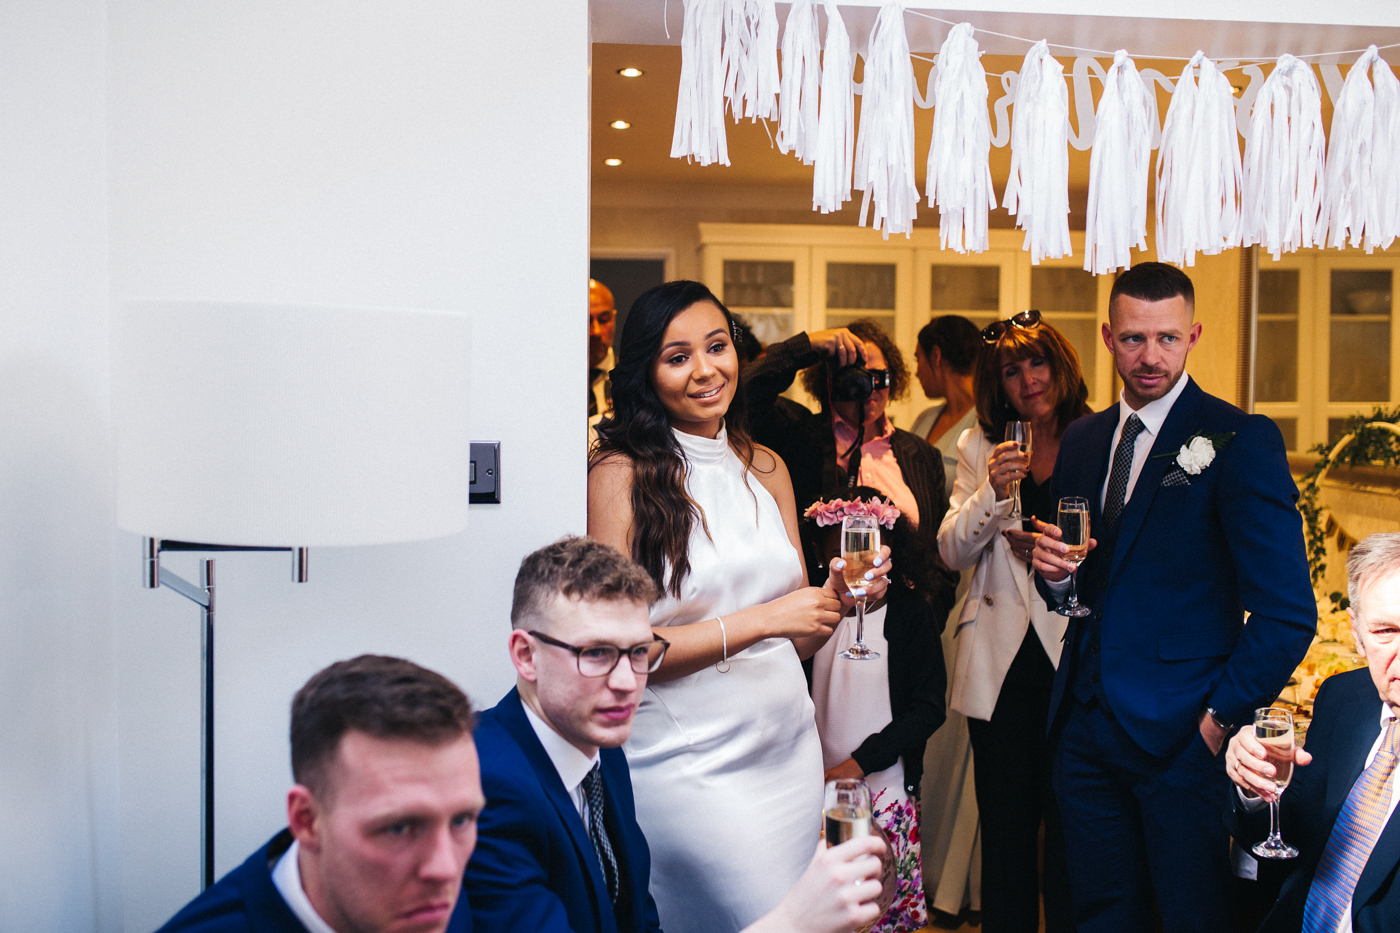 the bride and guests during the speeches. relaxed teesside middlesbrough wedding photographer, wedding at home